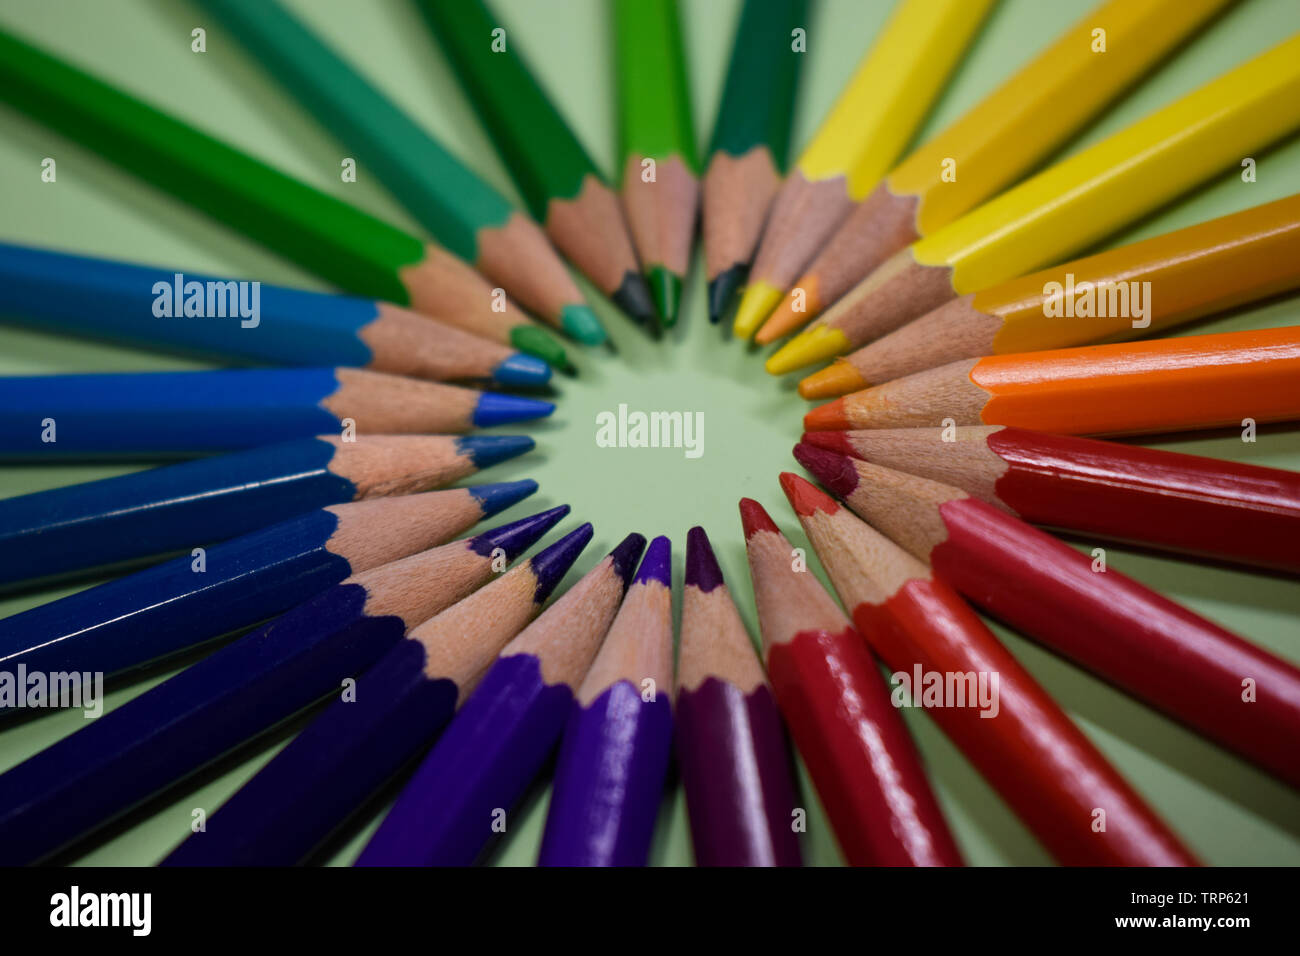 Closeup colorful pencil on green paper background. Macro of a group pencils folded in rainbow colors in a circle. Business concept, teamwork, united g - Stock Image